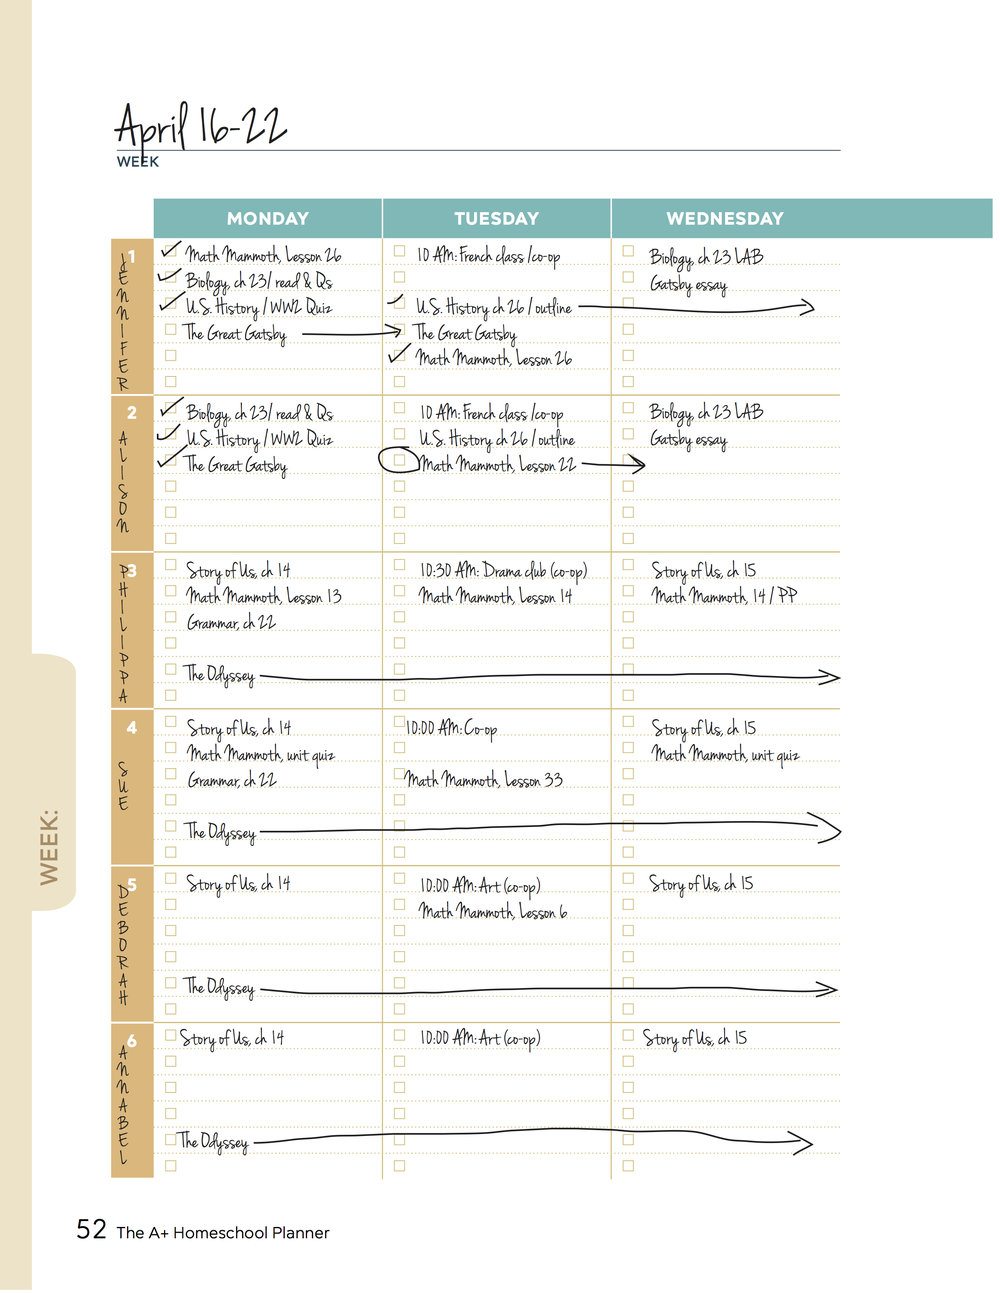 Sorry if you too now have that Beautiful south song stuck in your head, but even if your students have less earwormy names, there is plenty of room to keep up with their studies in the weekly planner pages.